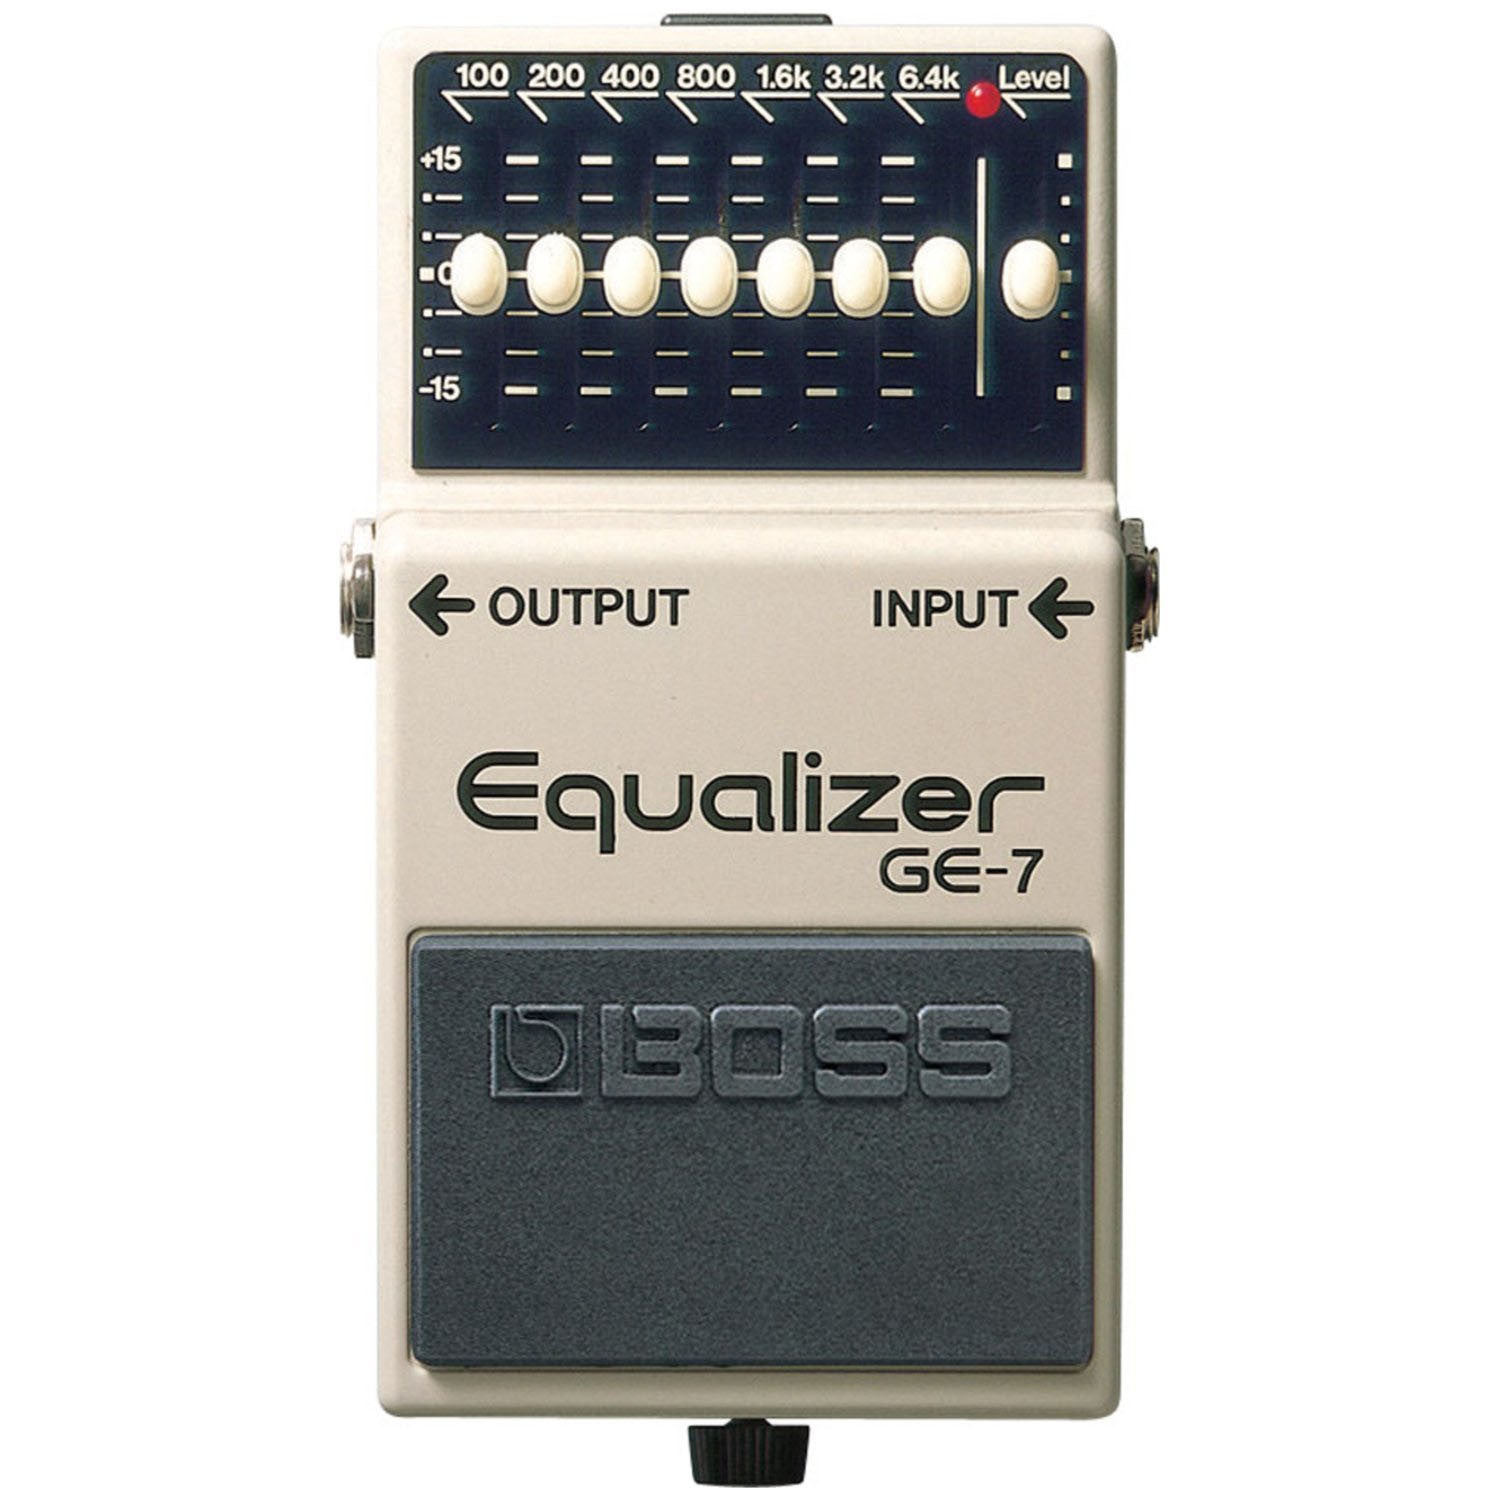 Shop online for Boss GE-7 Equalizer Pedal today.  Now available for purchase from Midlothian Music of Orland Park, Illinois, USA